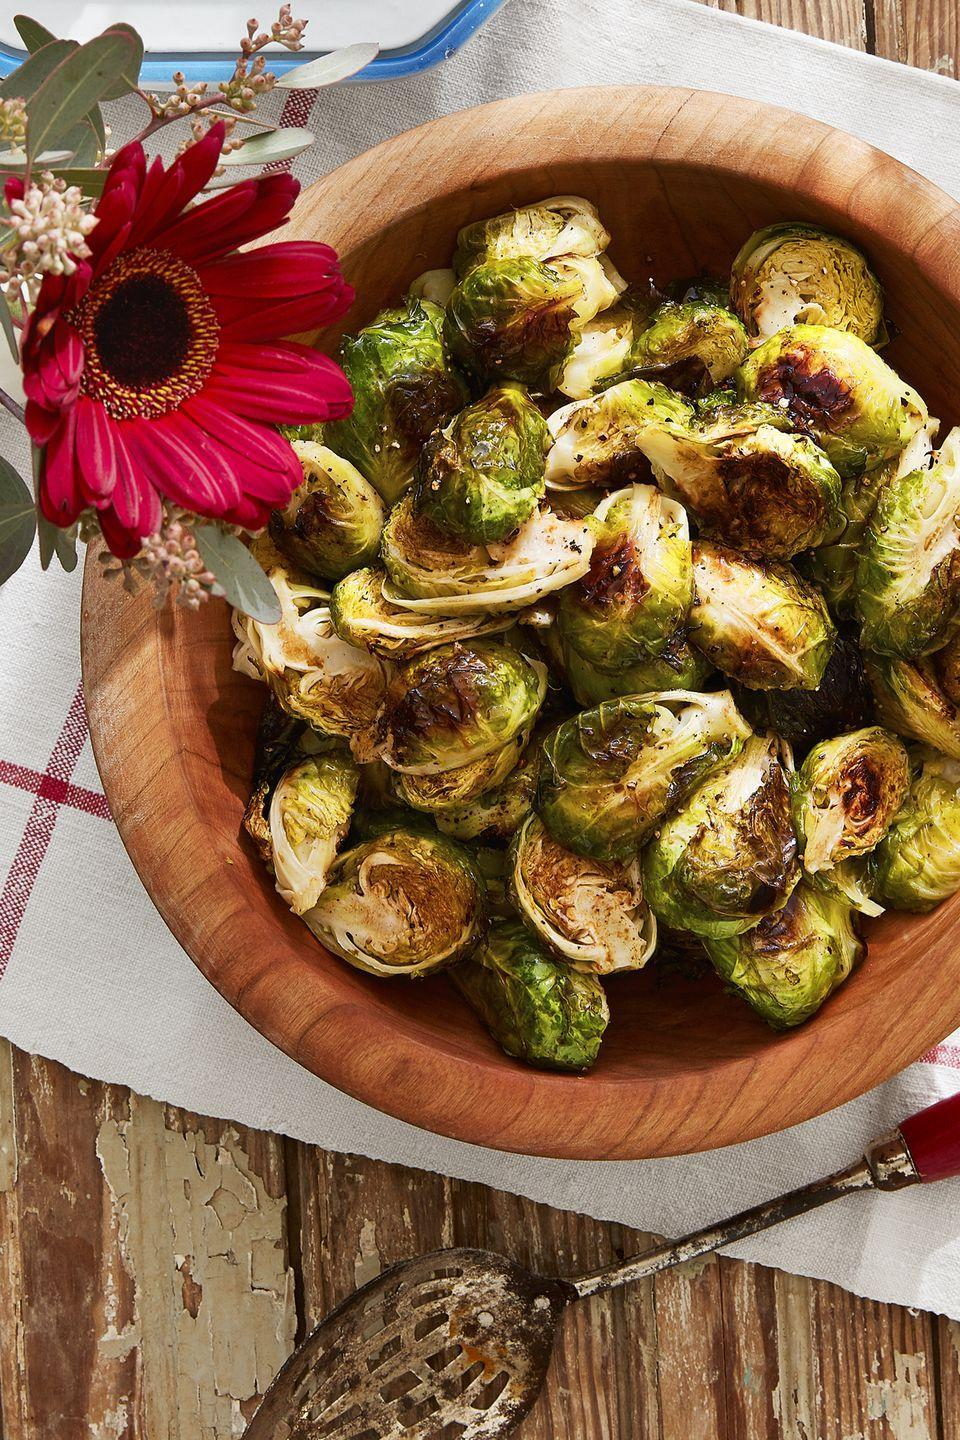 "<p>These Brussels are so good even the kids will want to eat them—yes, you heard that right. </p><p><strong><a href=""https://www.countryliving.com/food-drinks/recipes/a45288/roasted-brussels-sprouts-recipe/"" rel=""nofollow noopener"" target=""_blank"" data-ylk=""slk:Get the recipe"" class=""link rapid-noclick-resp"">Get the recipe</a>.</strong></p>"